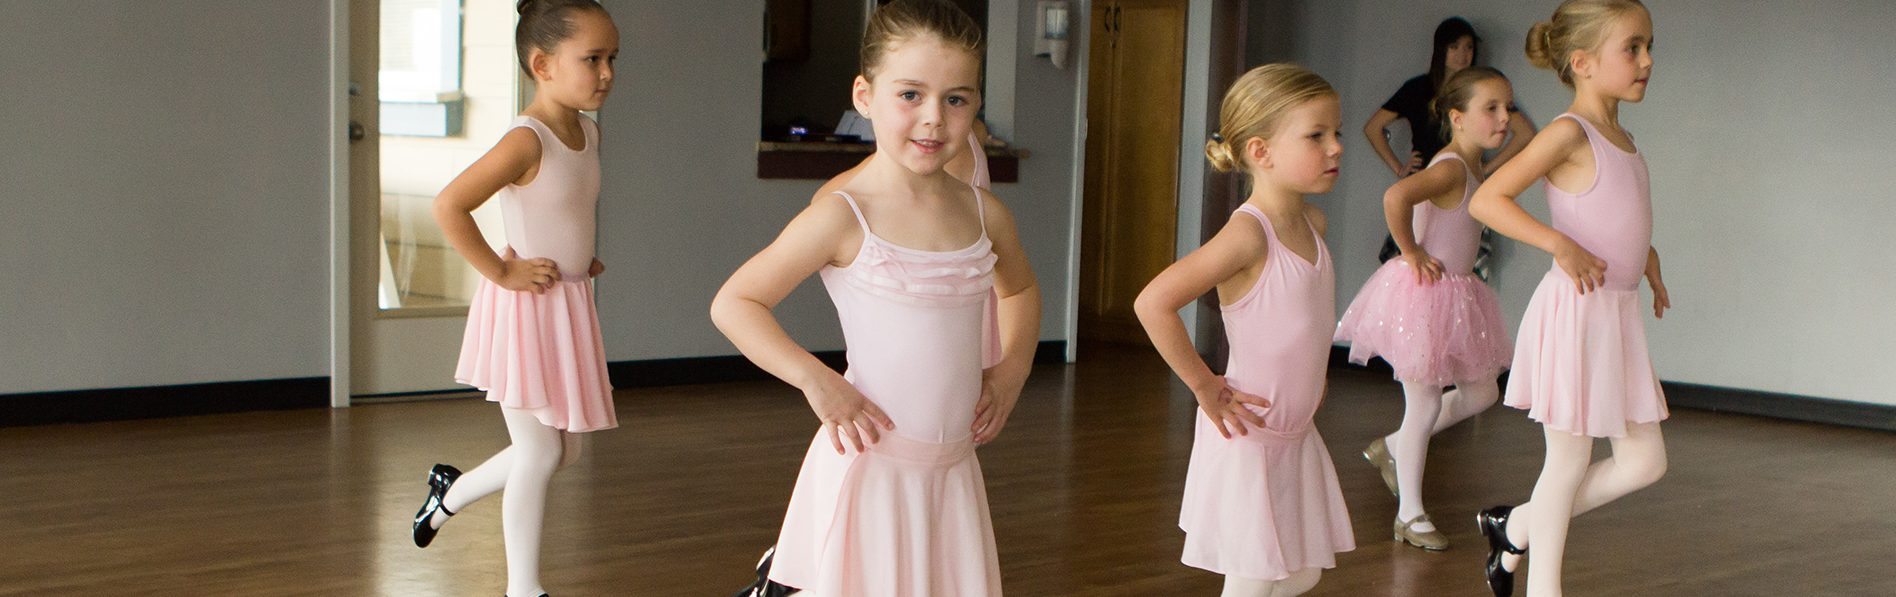 Devotion Danceworks Childrens Dance Classes Calgary